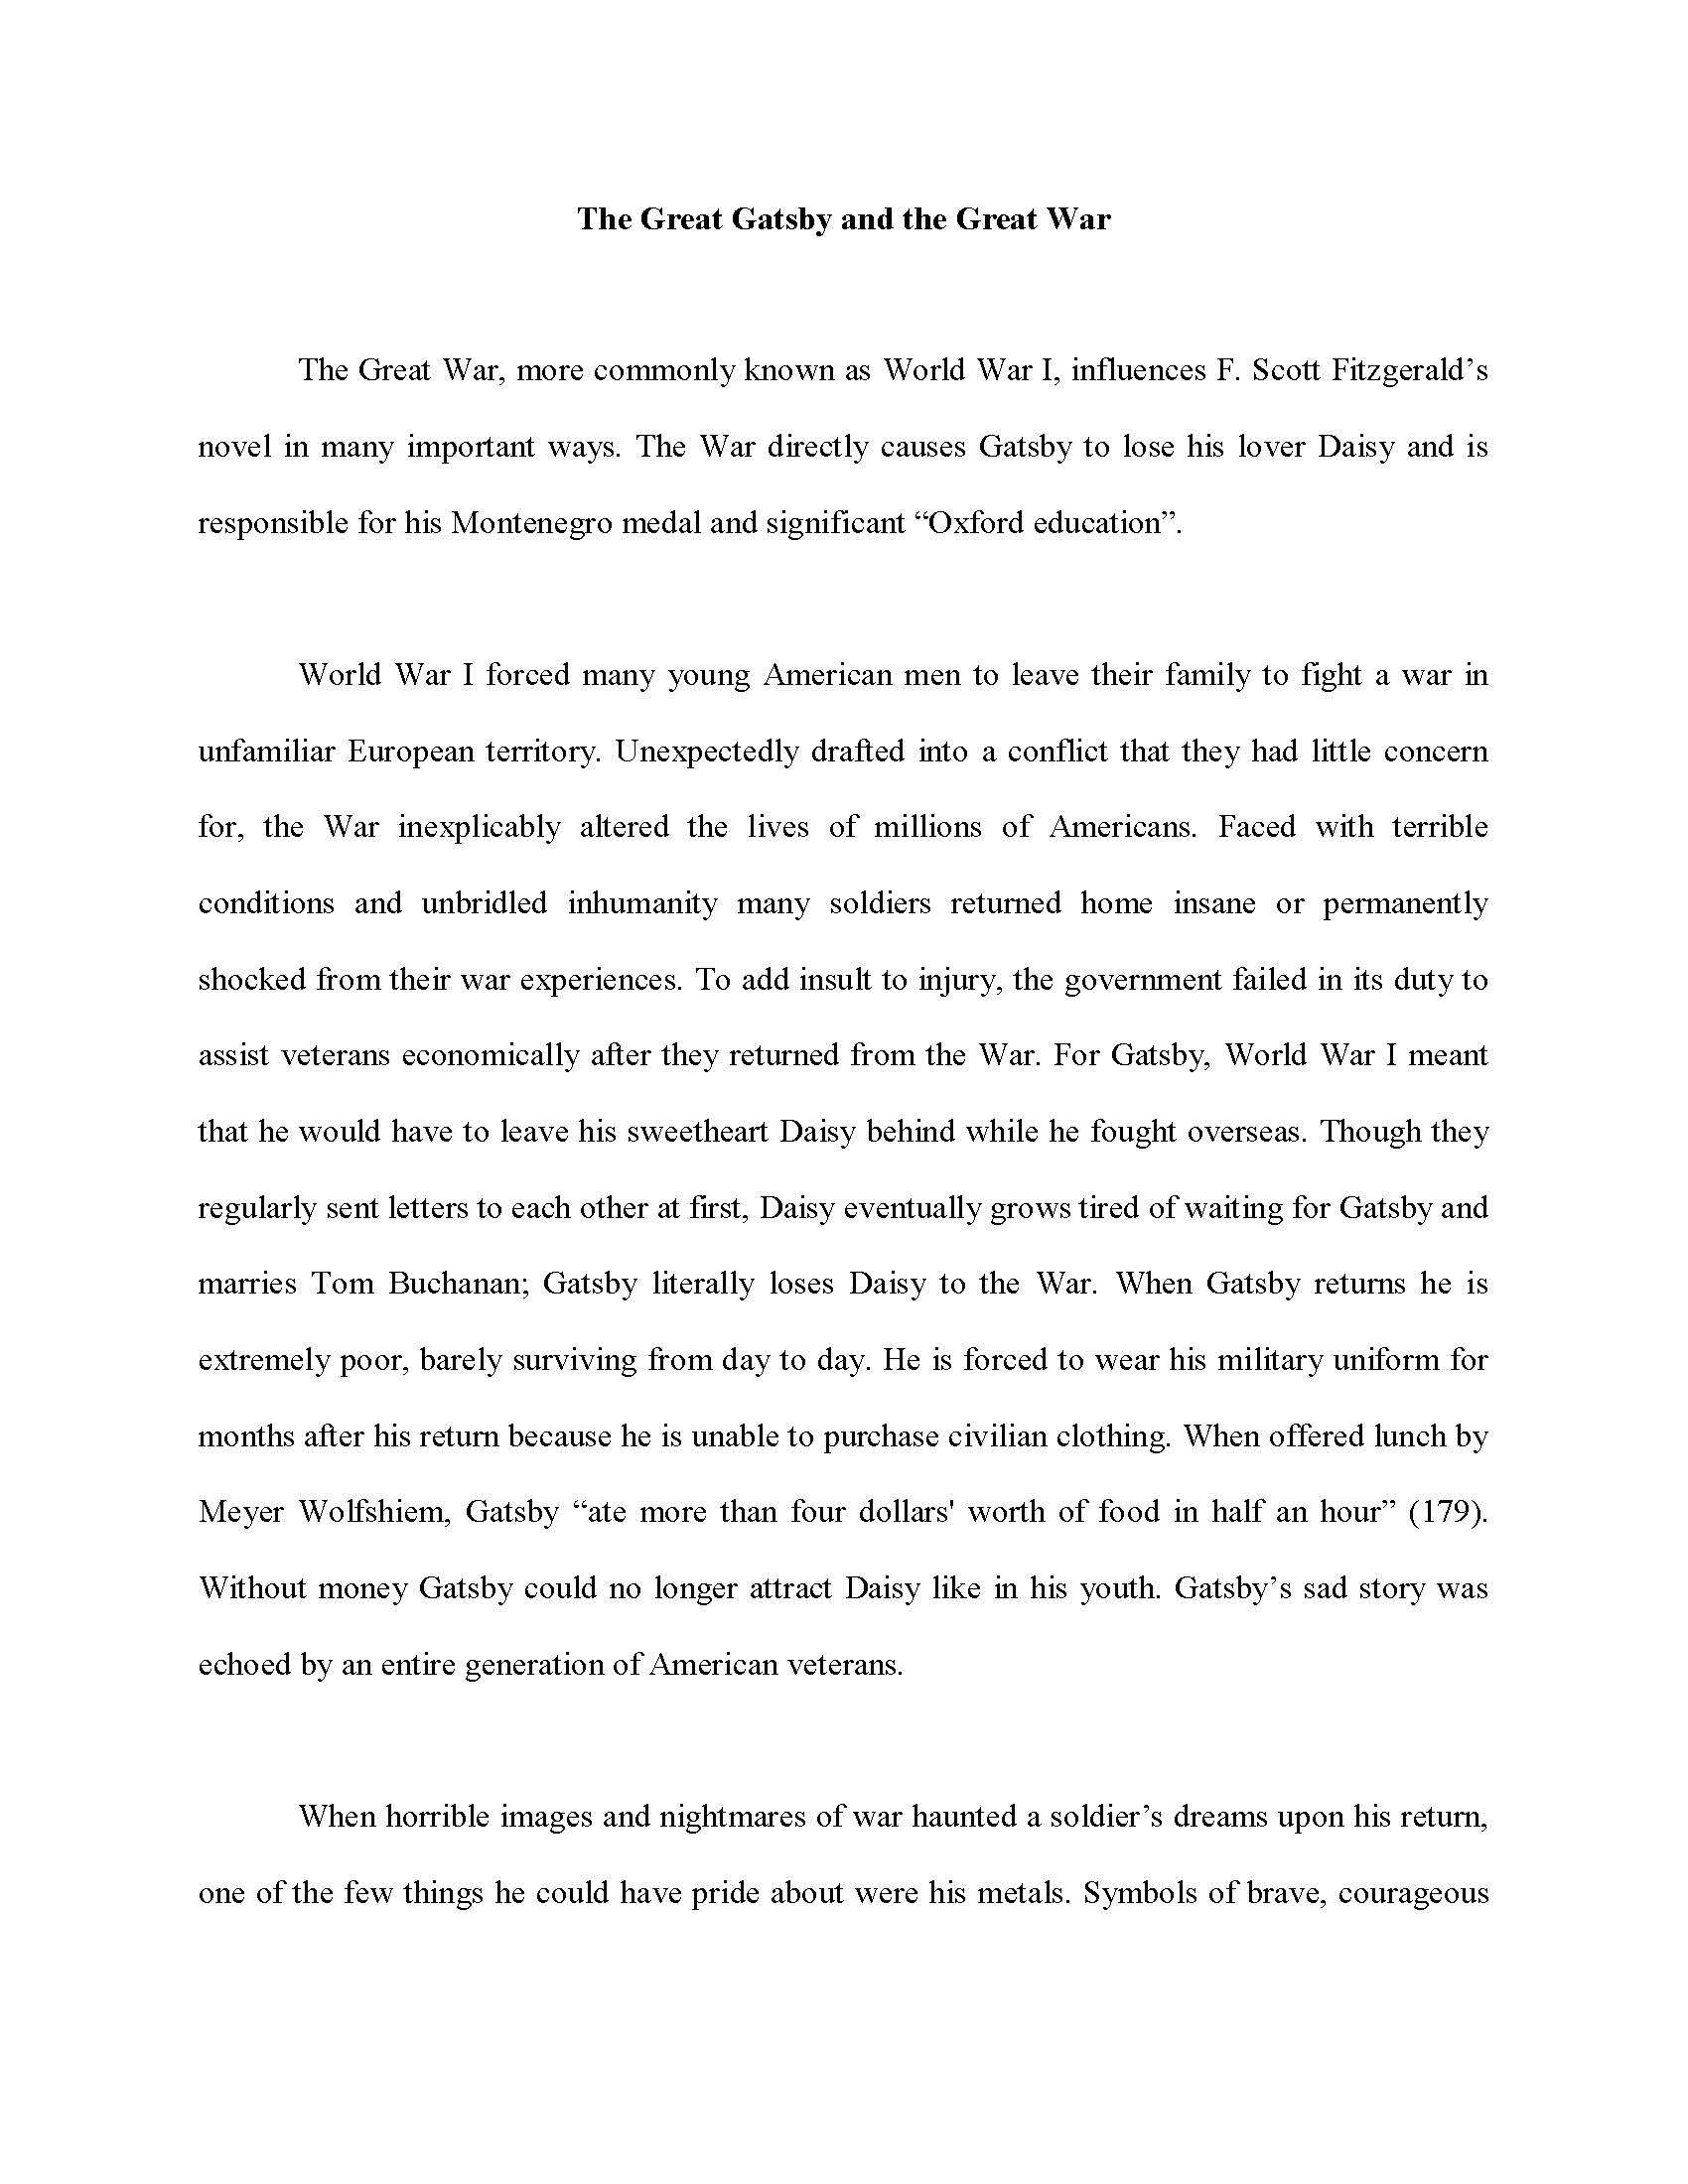 010 An Effective Claim For Argumentative Essay Is Example 3769730370 How Long Are Essays In High Wondrous Which Statement Of Brainly Quizlet Full